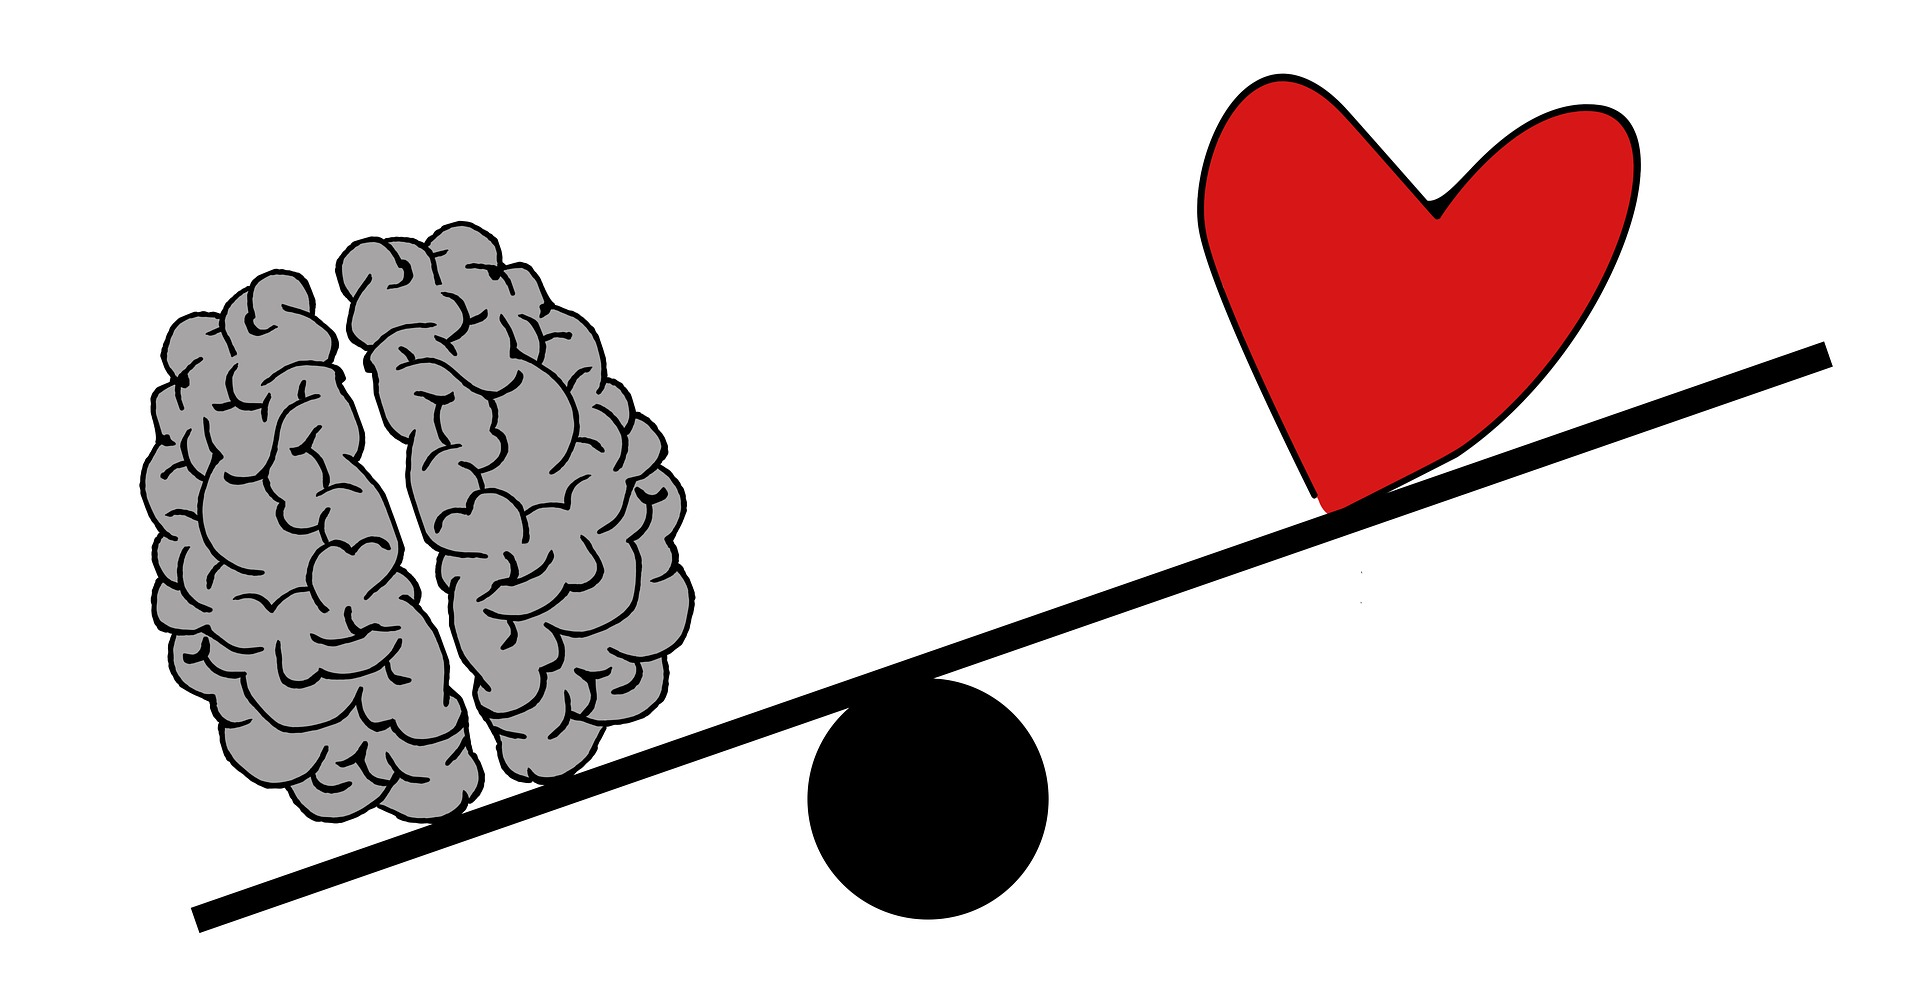 Brain and heart on a seesaw, Brain lower, heart higher